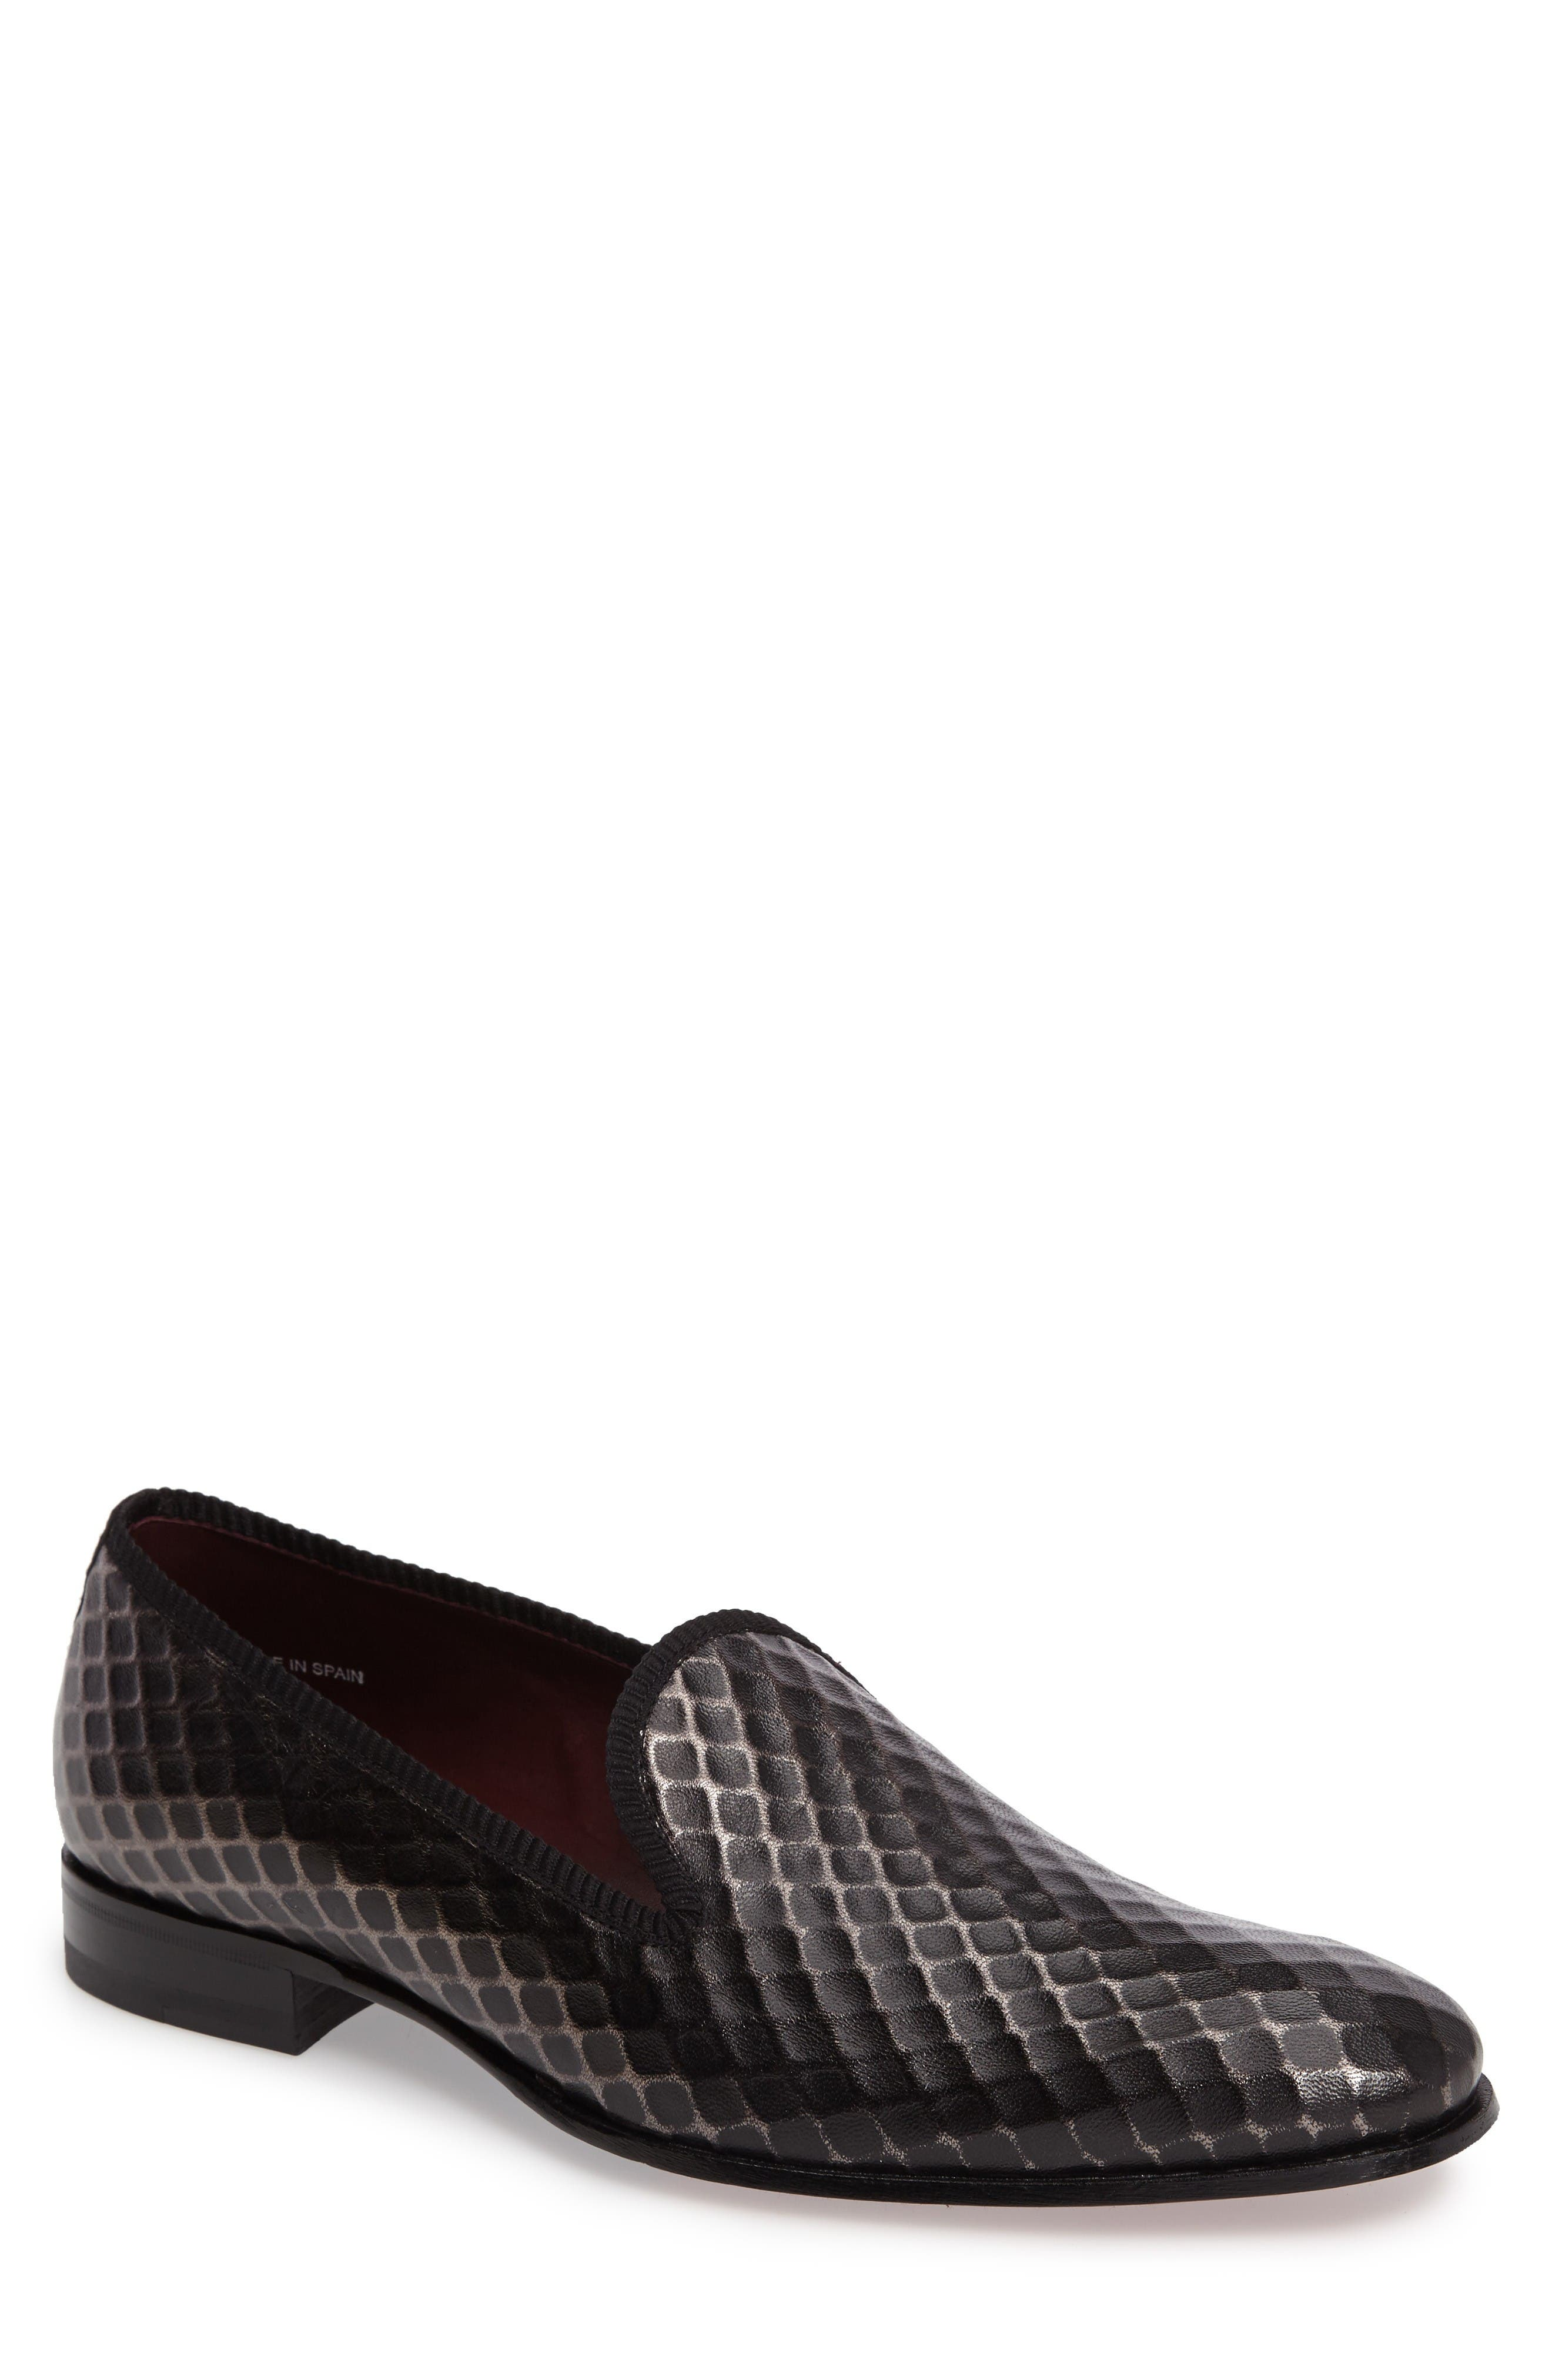 Hilbert Loafer,                             Main thumbnail 1, color,                             Grey Leather